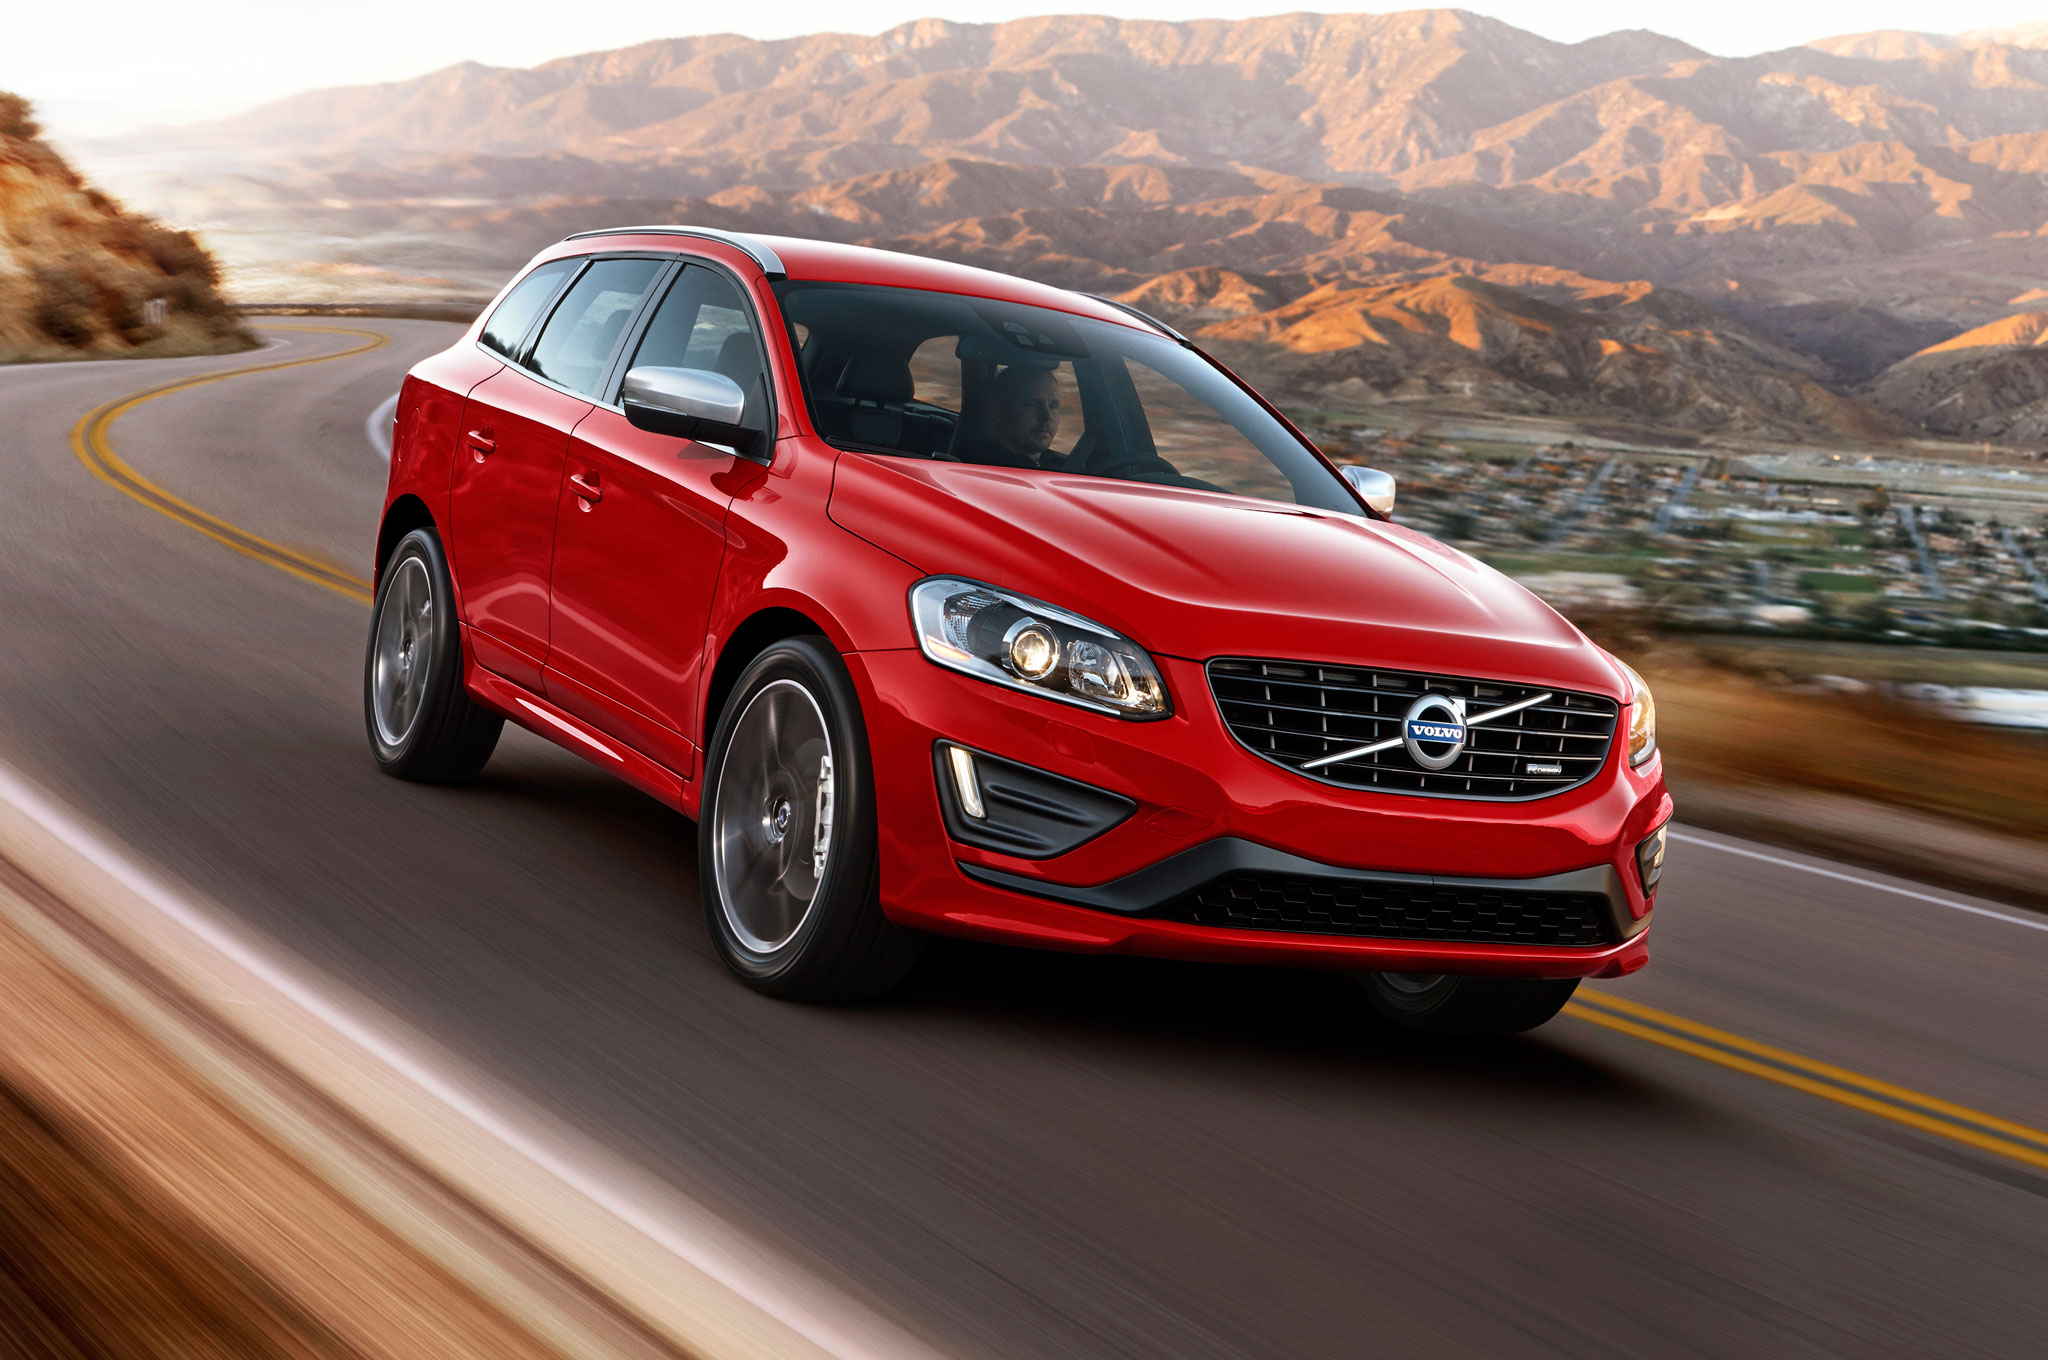 Volvo Xc60 2015 Guncel Fiyat Listesi further 2016 also 206726 Heels Wheels 2016 Volvo S60 T5 Review likewise 2016 Volvo Xc70 as well Volvo V40 Cross Country Review Auto Express. on volvo xc60 t5 awd 2015